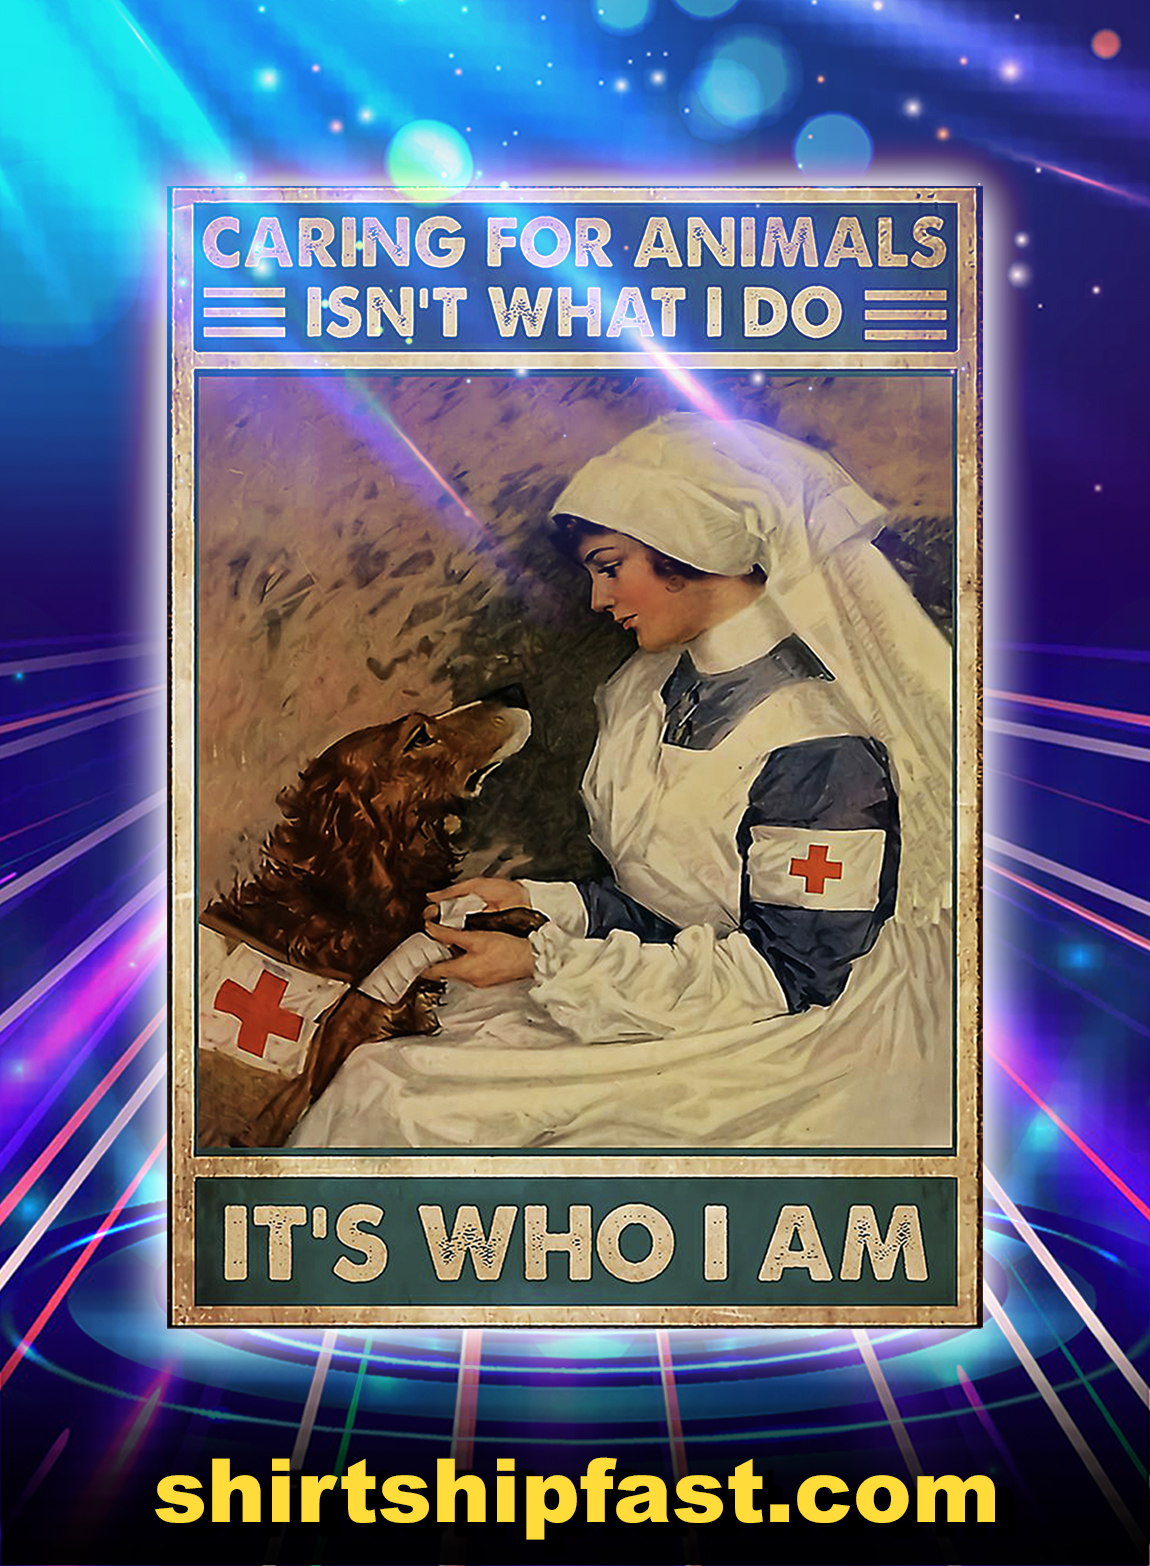 Veterinarian caring for animals isn't what i do it's who i am poster - A2